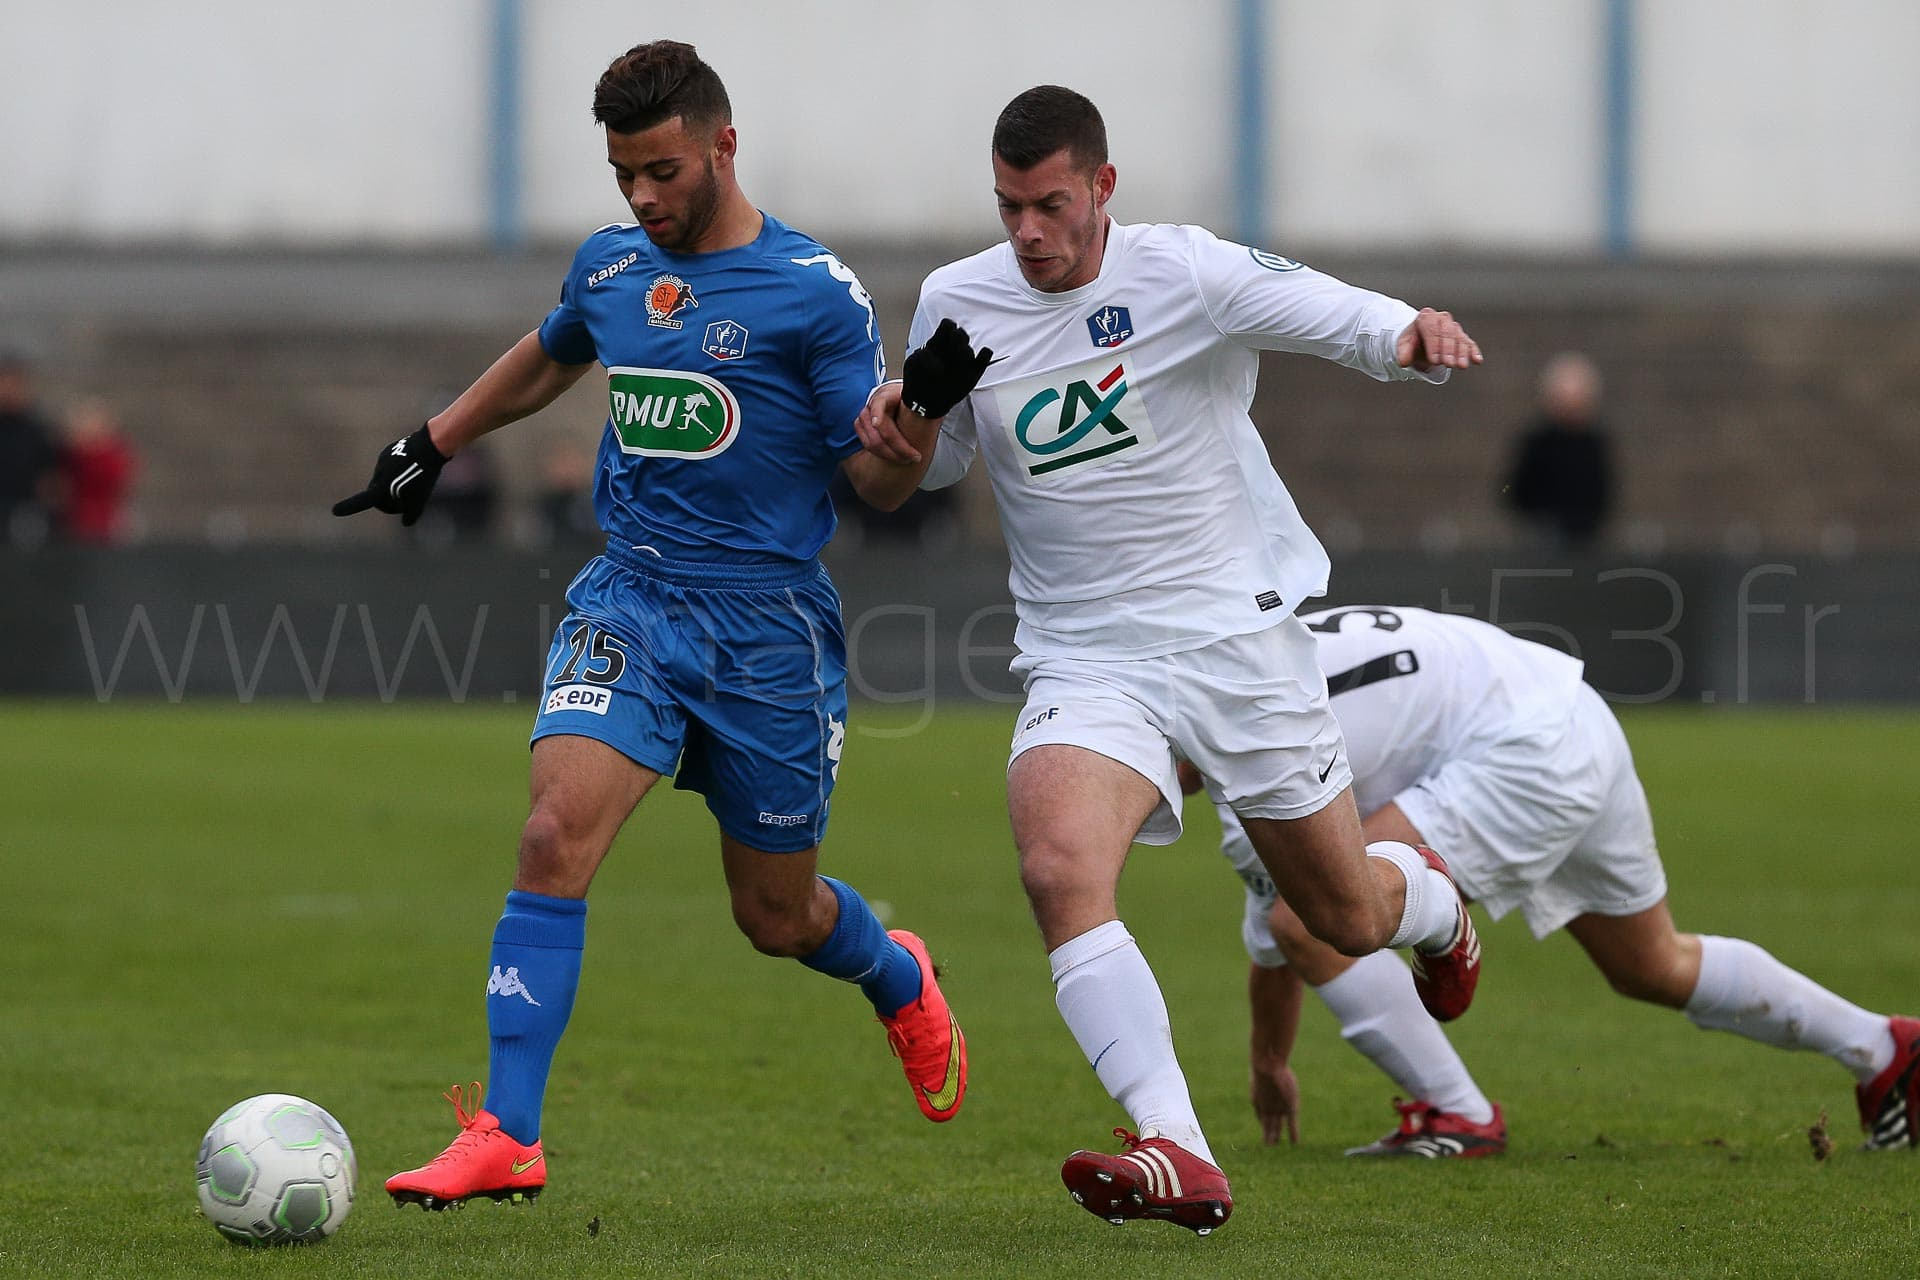 NG-CoupedeFrance-1415-T07-Laval-SaintBerthevin_43